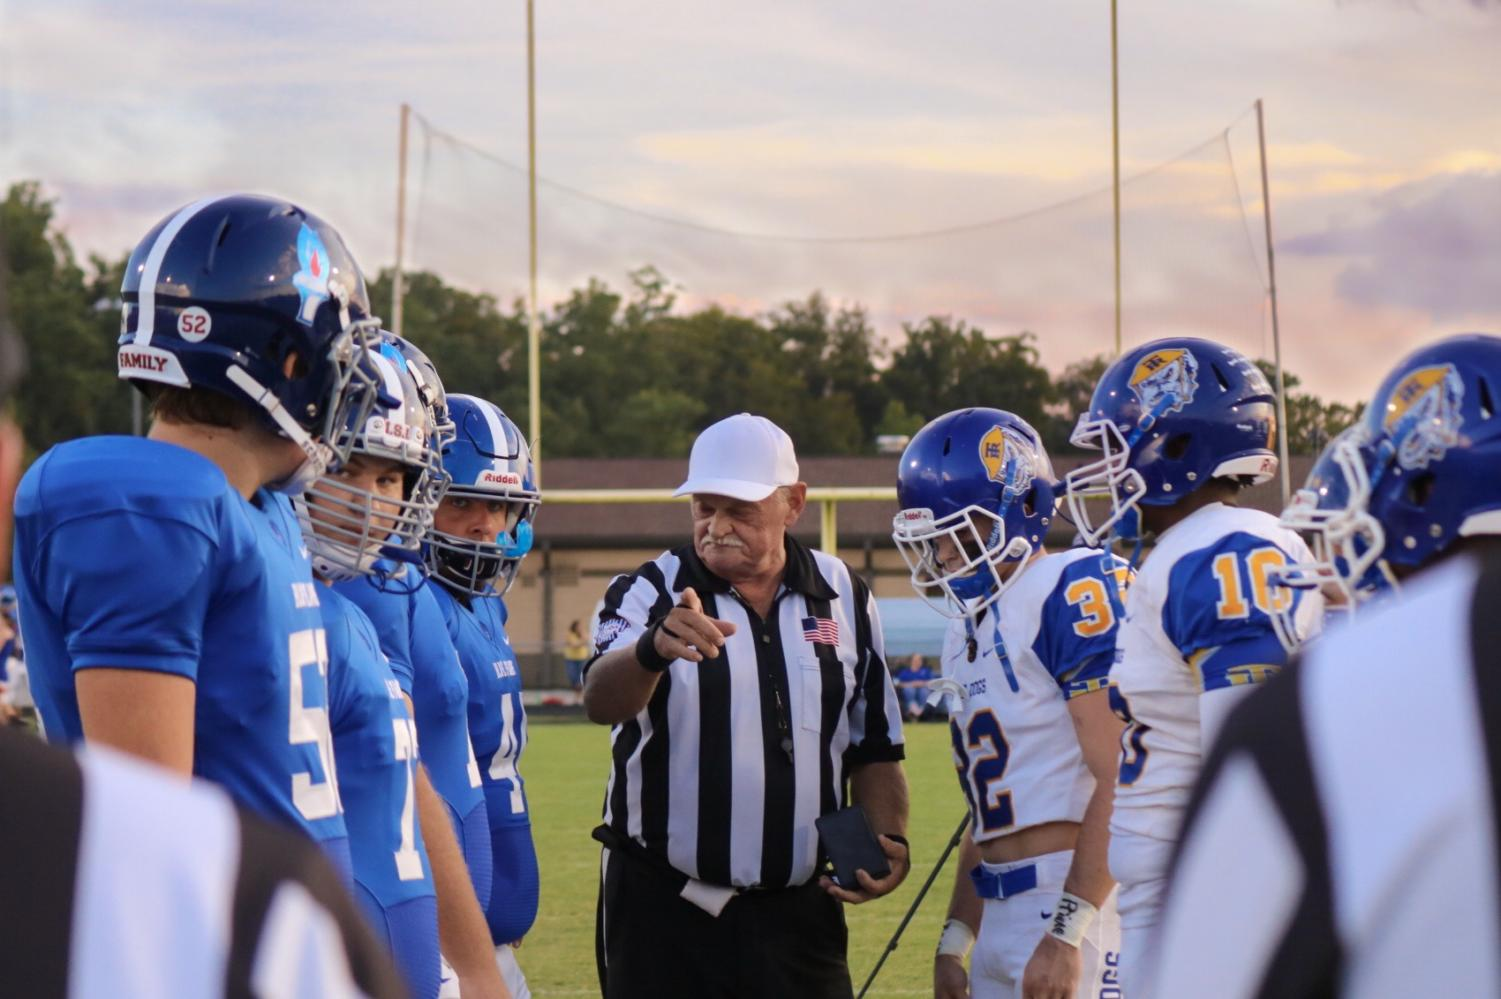 Referee addresses team captains during coin toss.